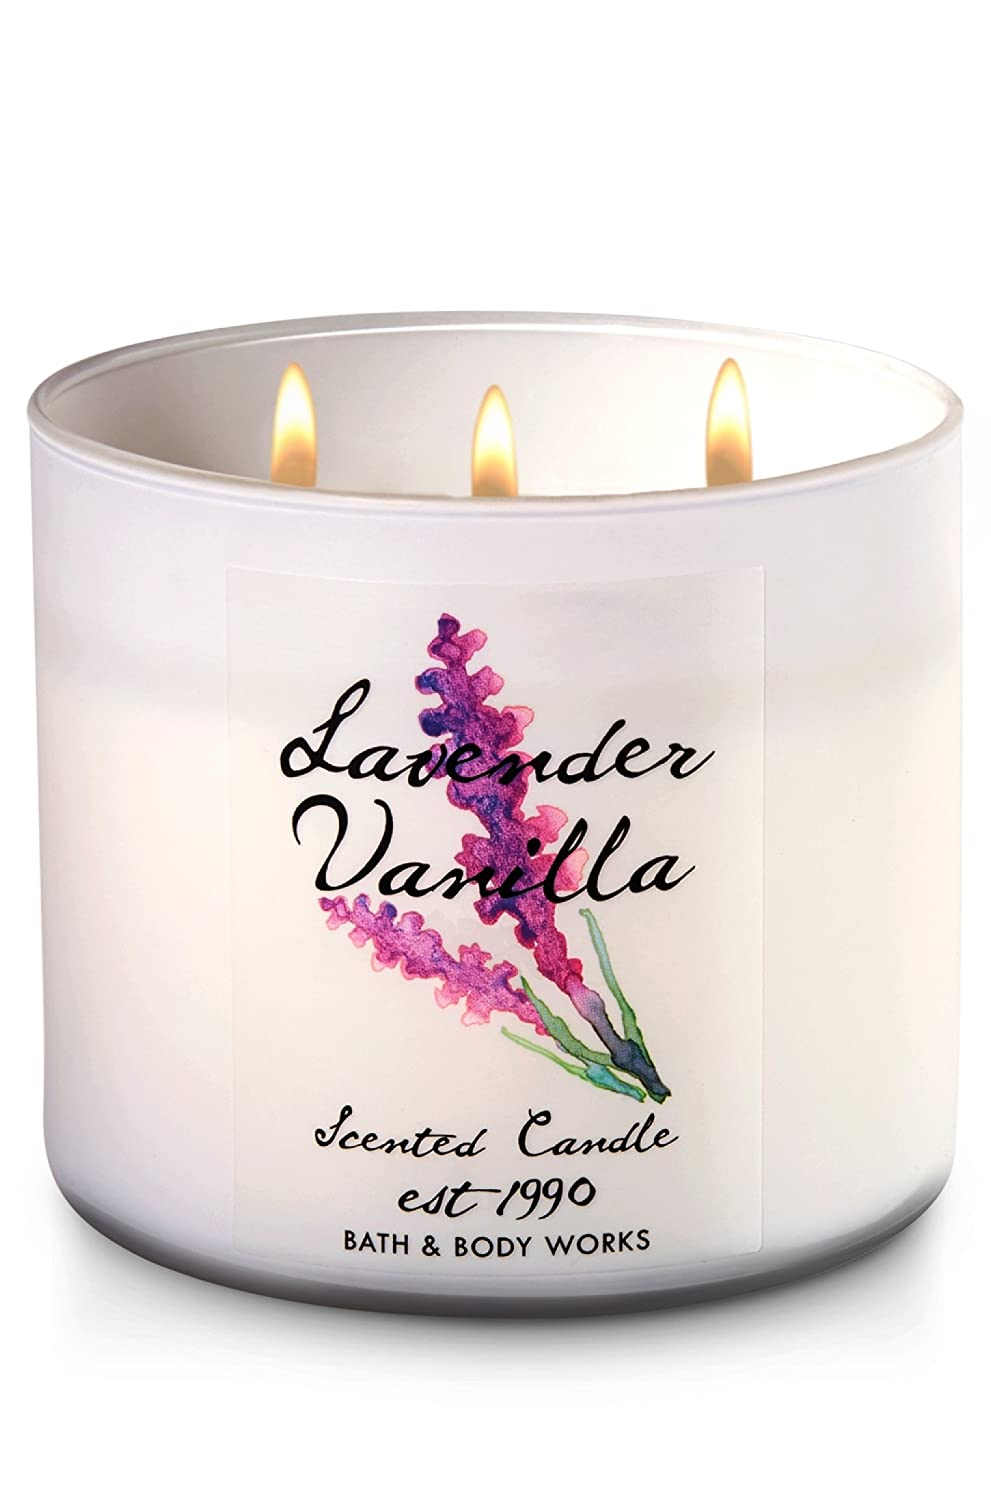 Bath & Body Works 3-Wick Scented Candle in Lavender Vanilla AX-AY-ABHI-116361